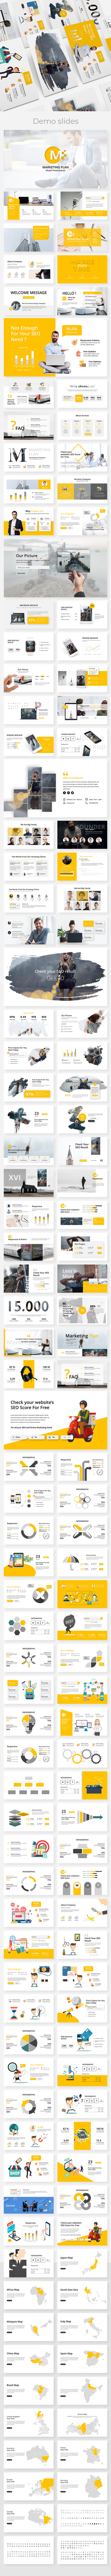 Marketing Plan Google Slide Template - Google Slides Presentation Templates